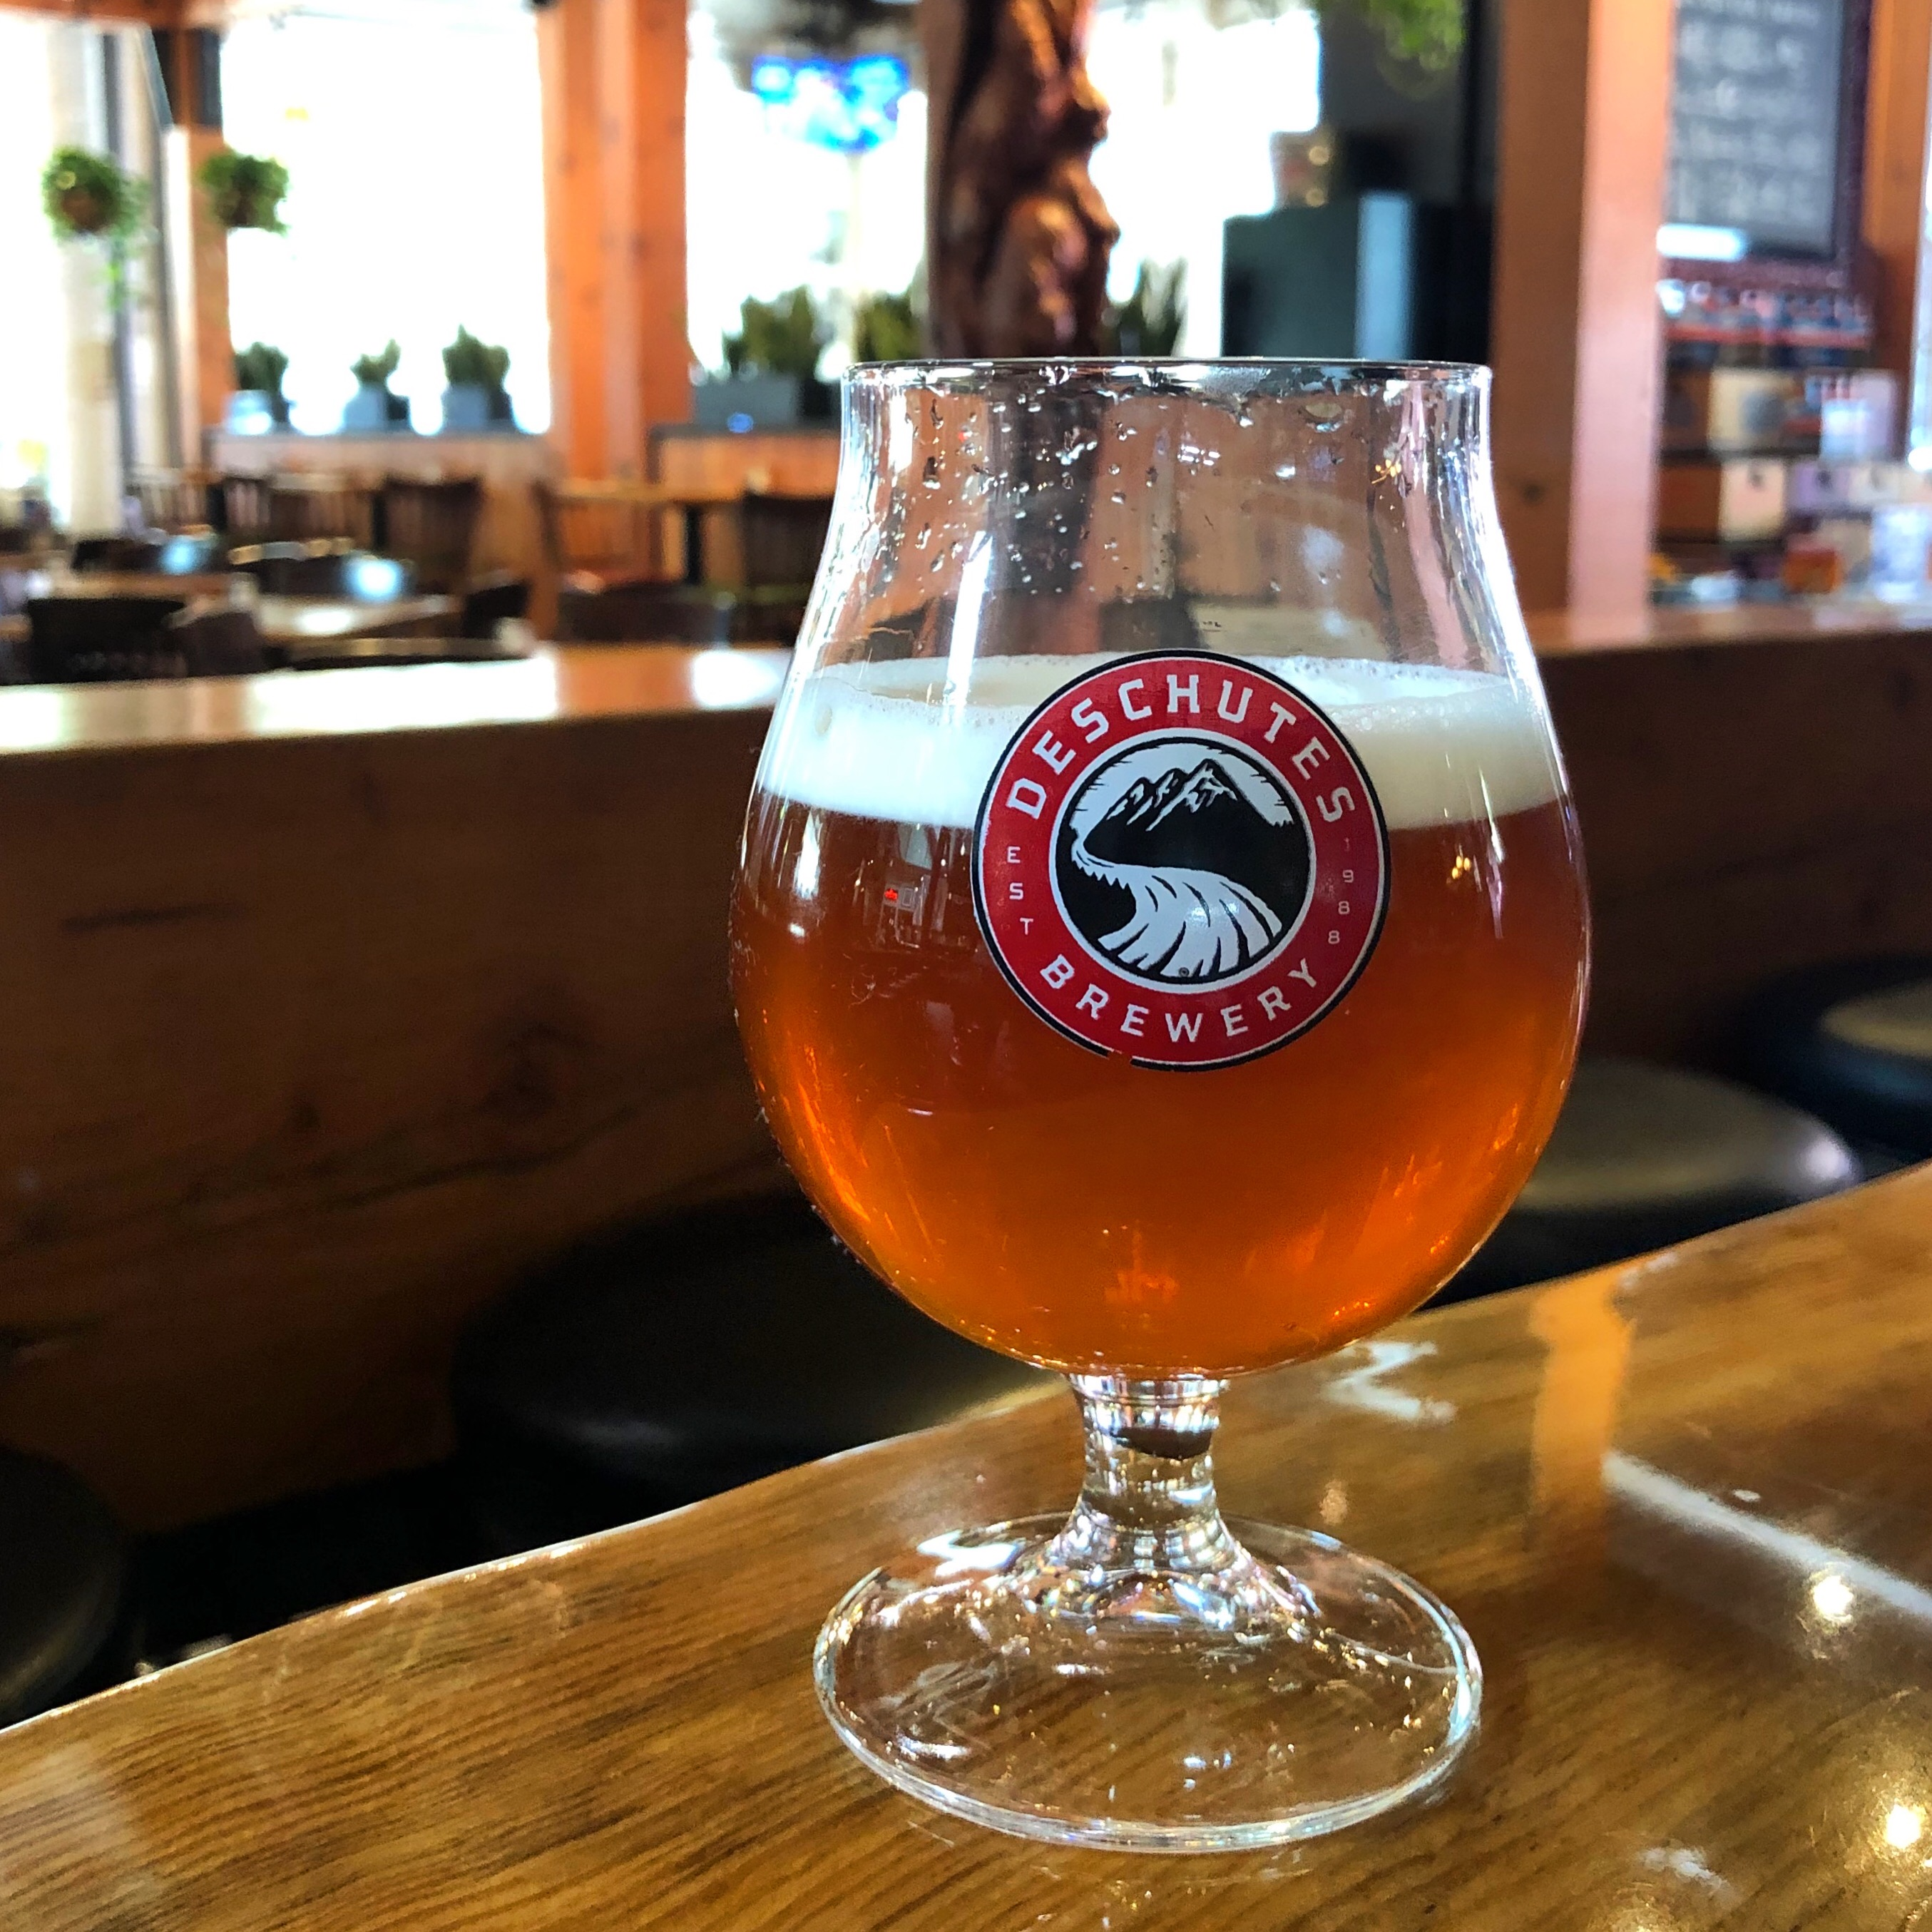 Fresh Hop in the City IIPA on cask at Deschutes Brewery - Portland Public House.